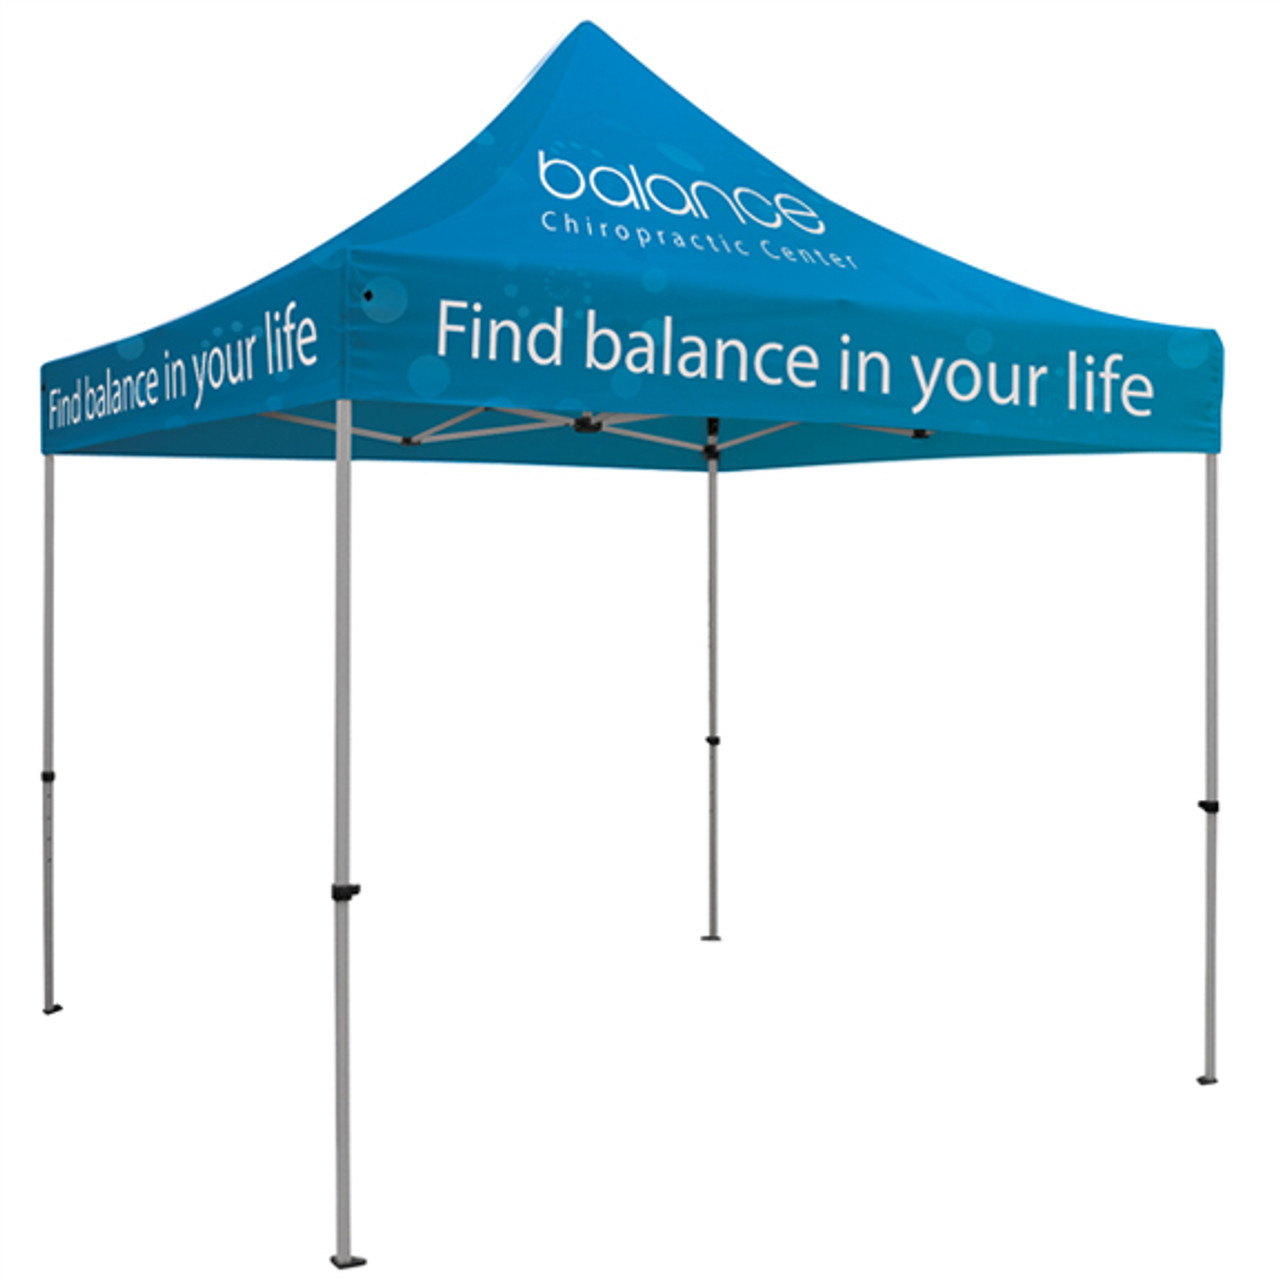 tent_4color__10896.1519975874.jpg?cu003d2u0026imbypassu003don  sc 1 st  YouHUGE & 10u0027 Canopy Heavy Duty Full Color Print